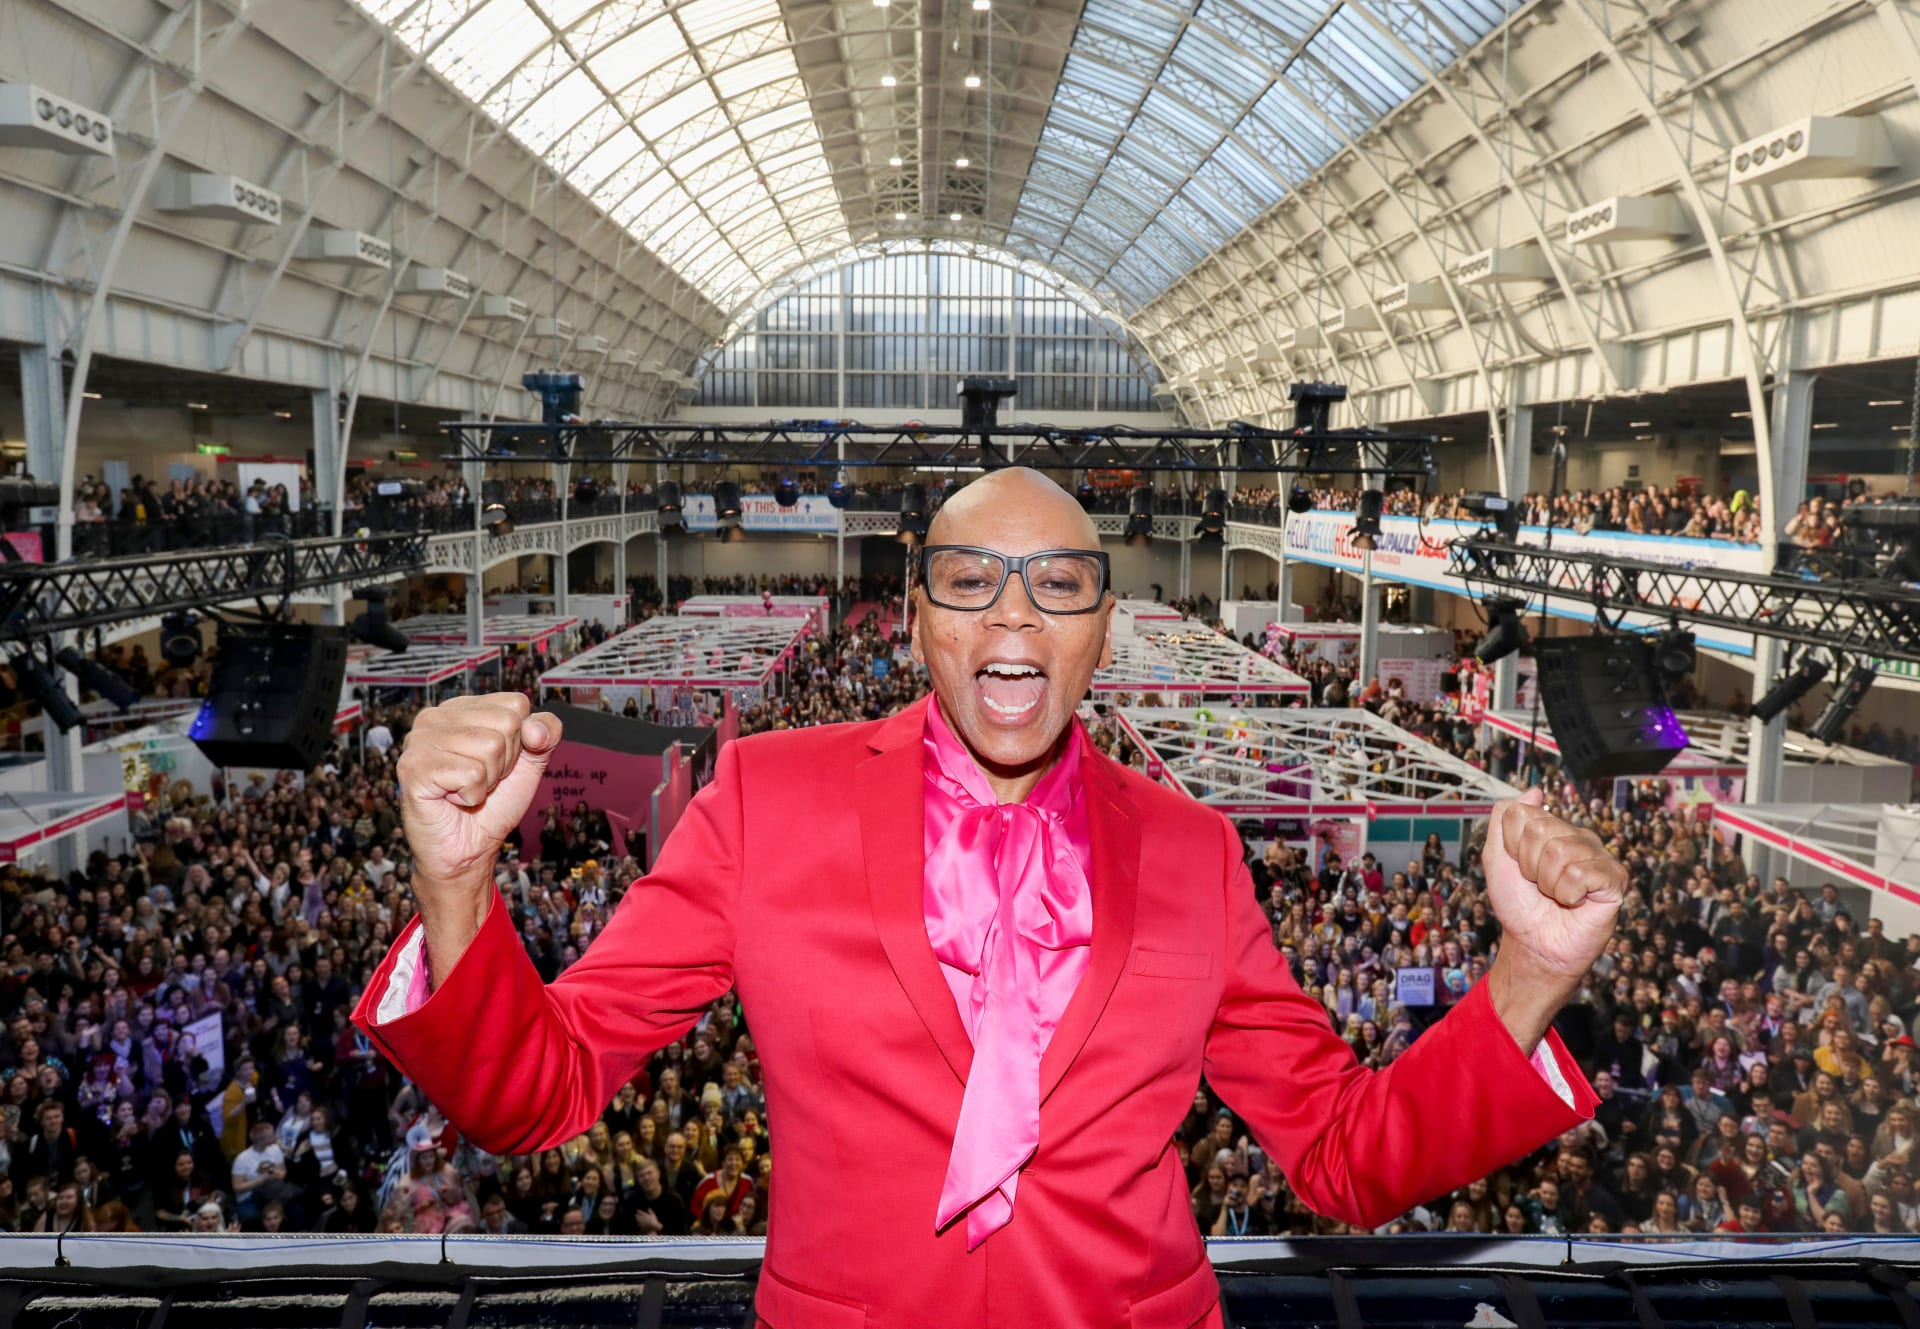 rupaul at dragconuk